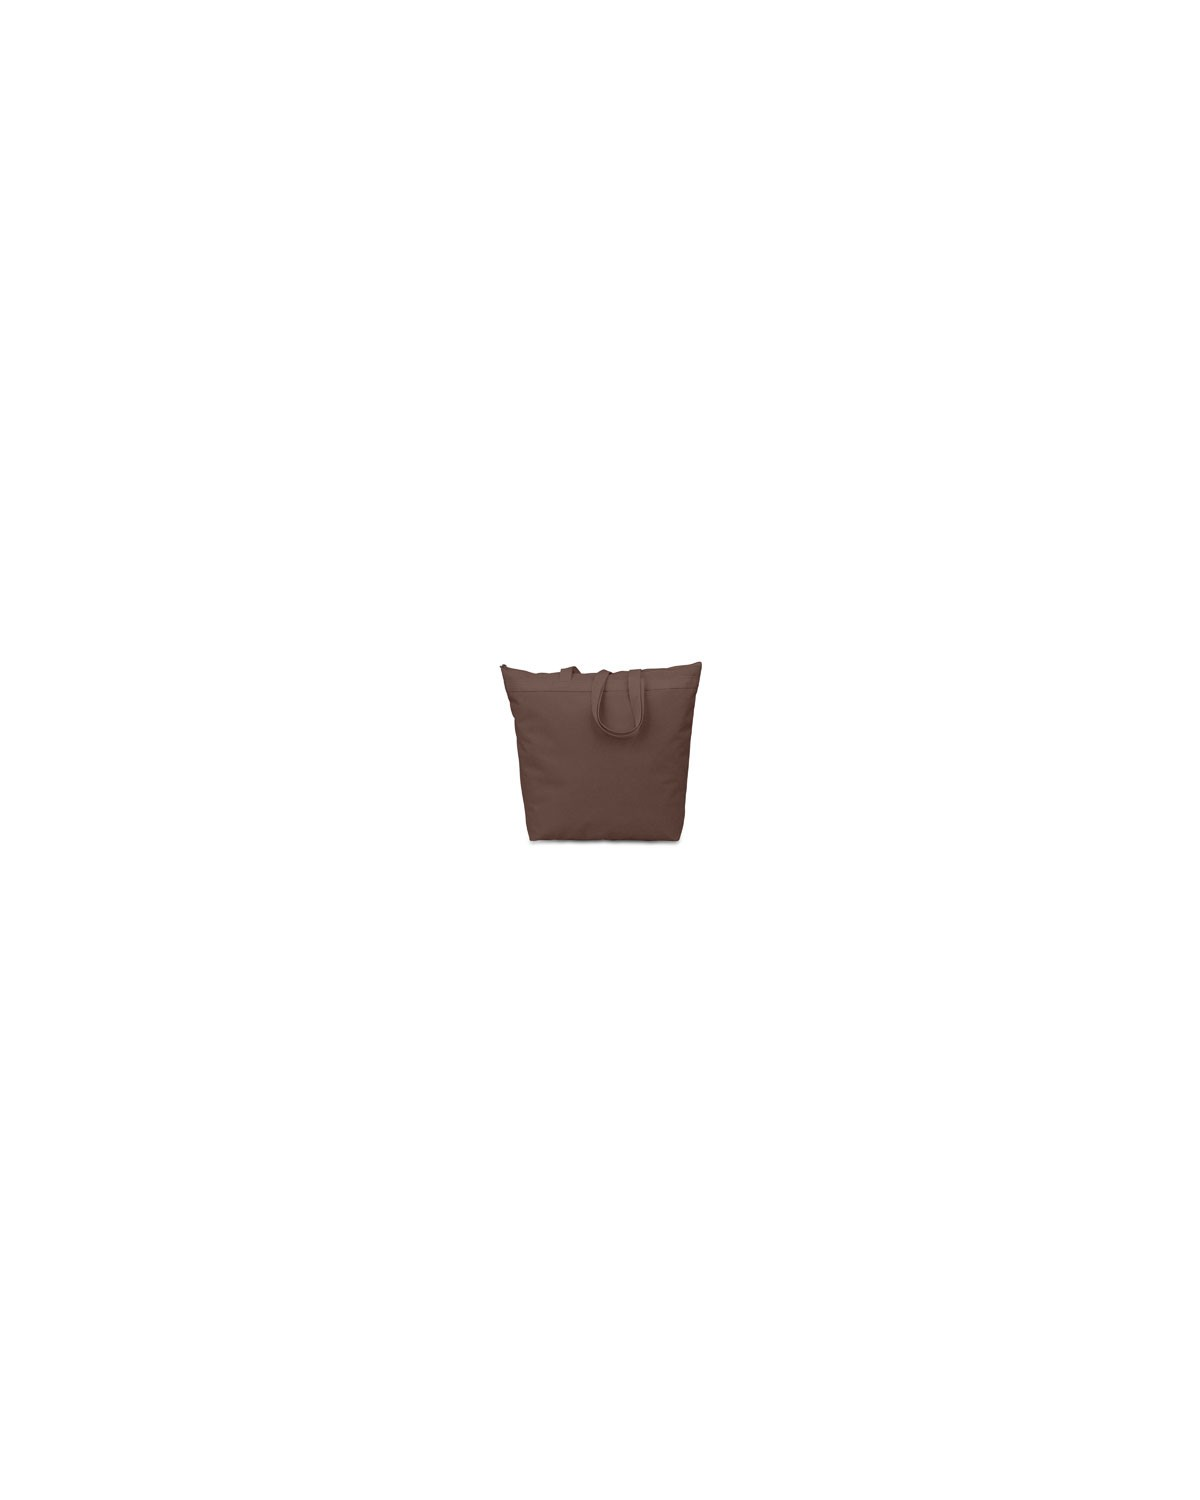 8802 Liberty Bags BROWN